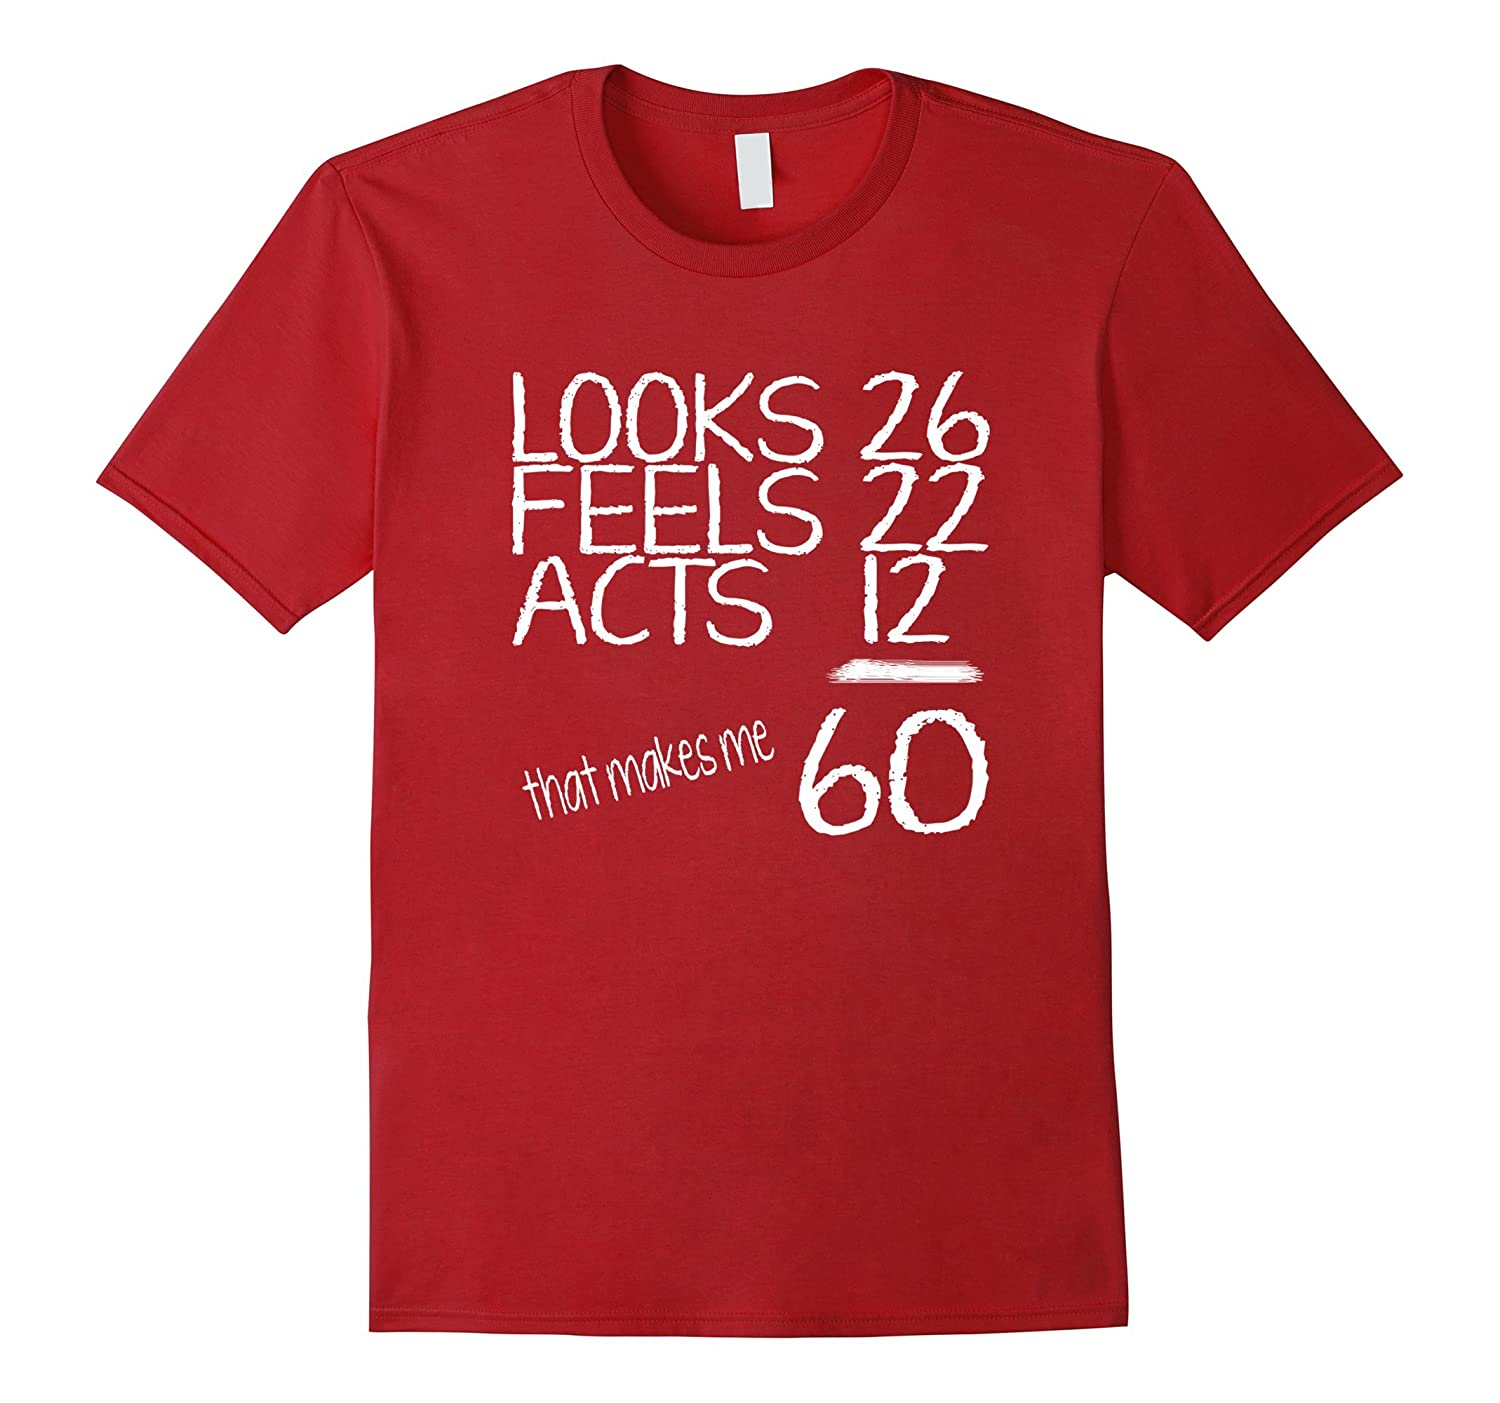 60th birthday gifts for him or her t shirt-PL